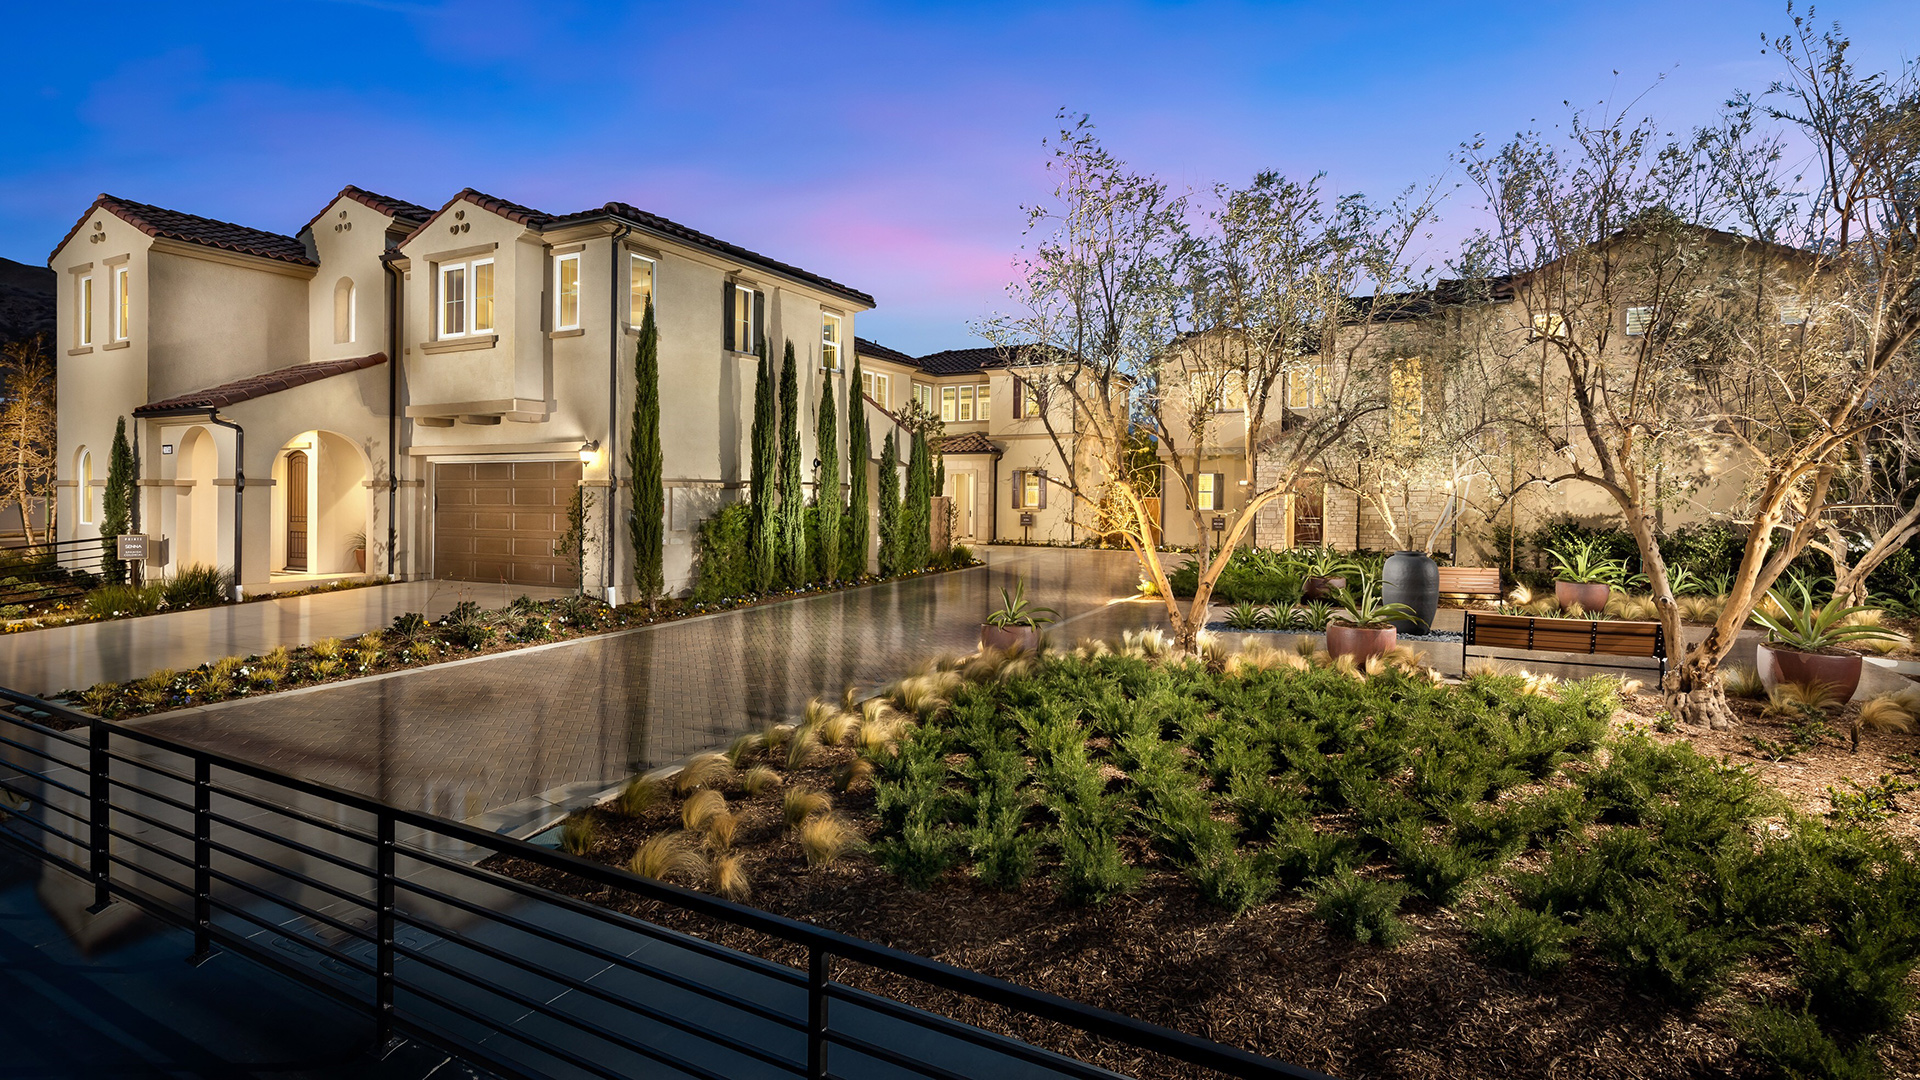 New Luxury Homes For Sale In Porter Ranch Ca The Canyons At Porter Ranch Pointe